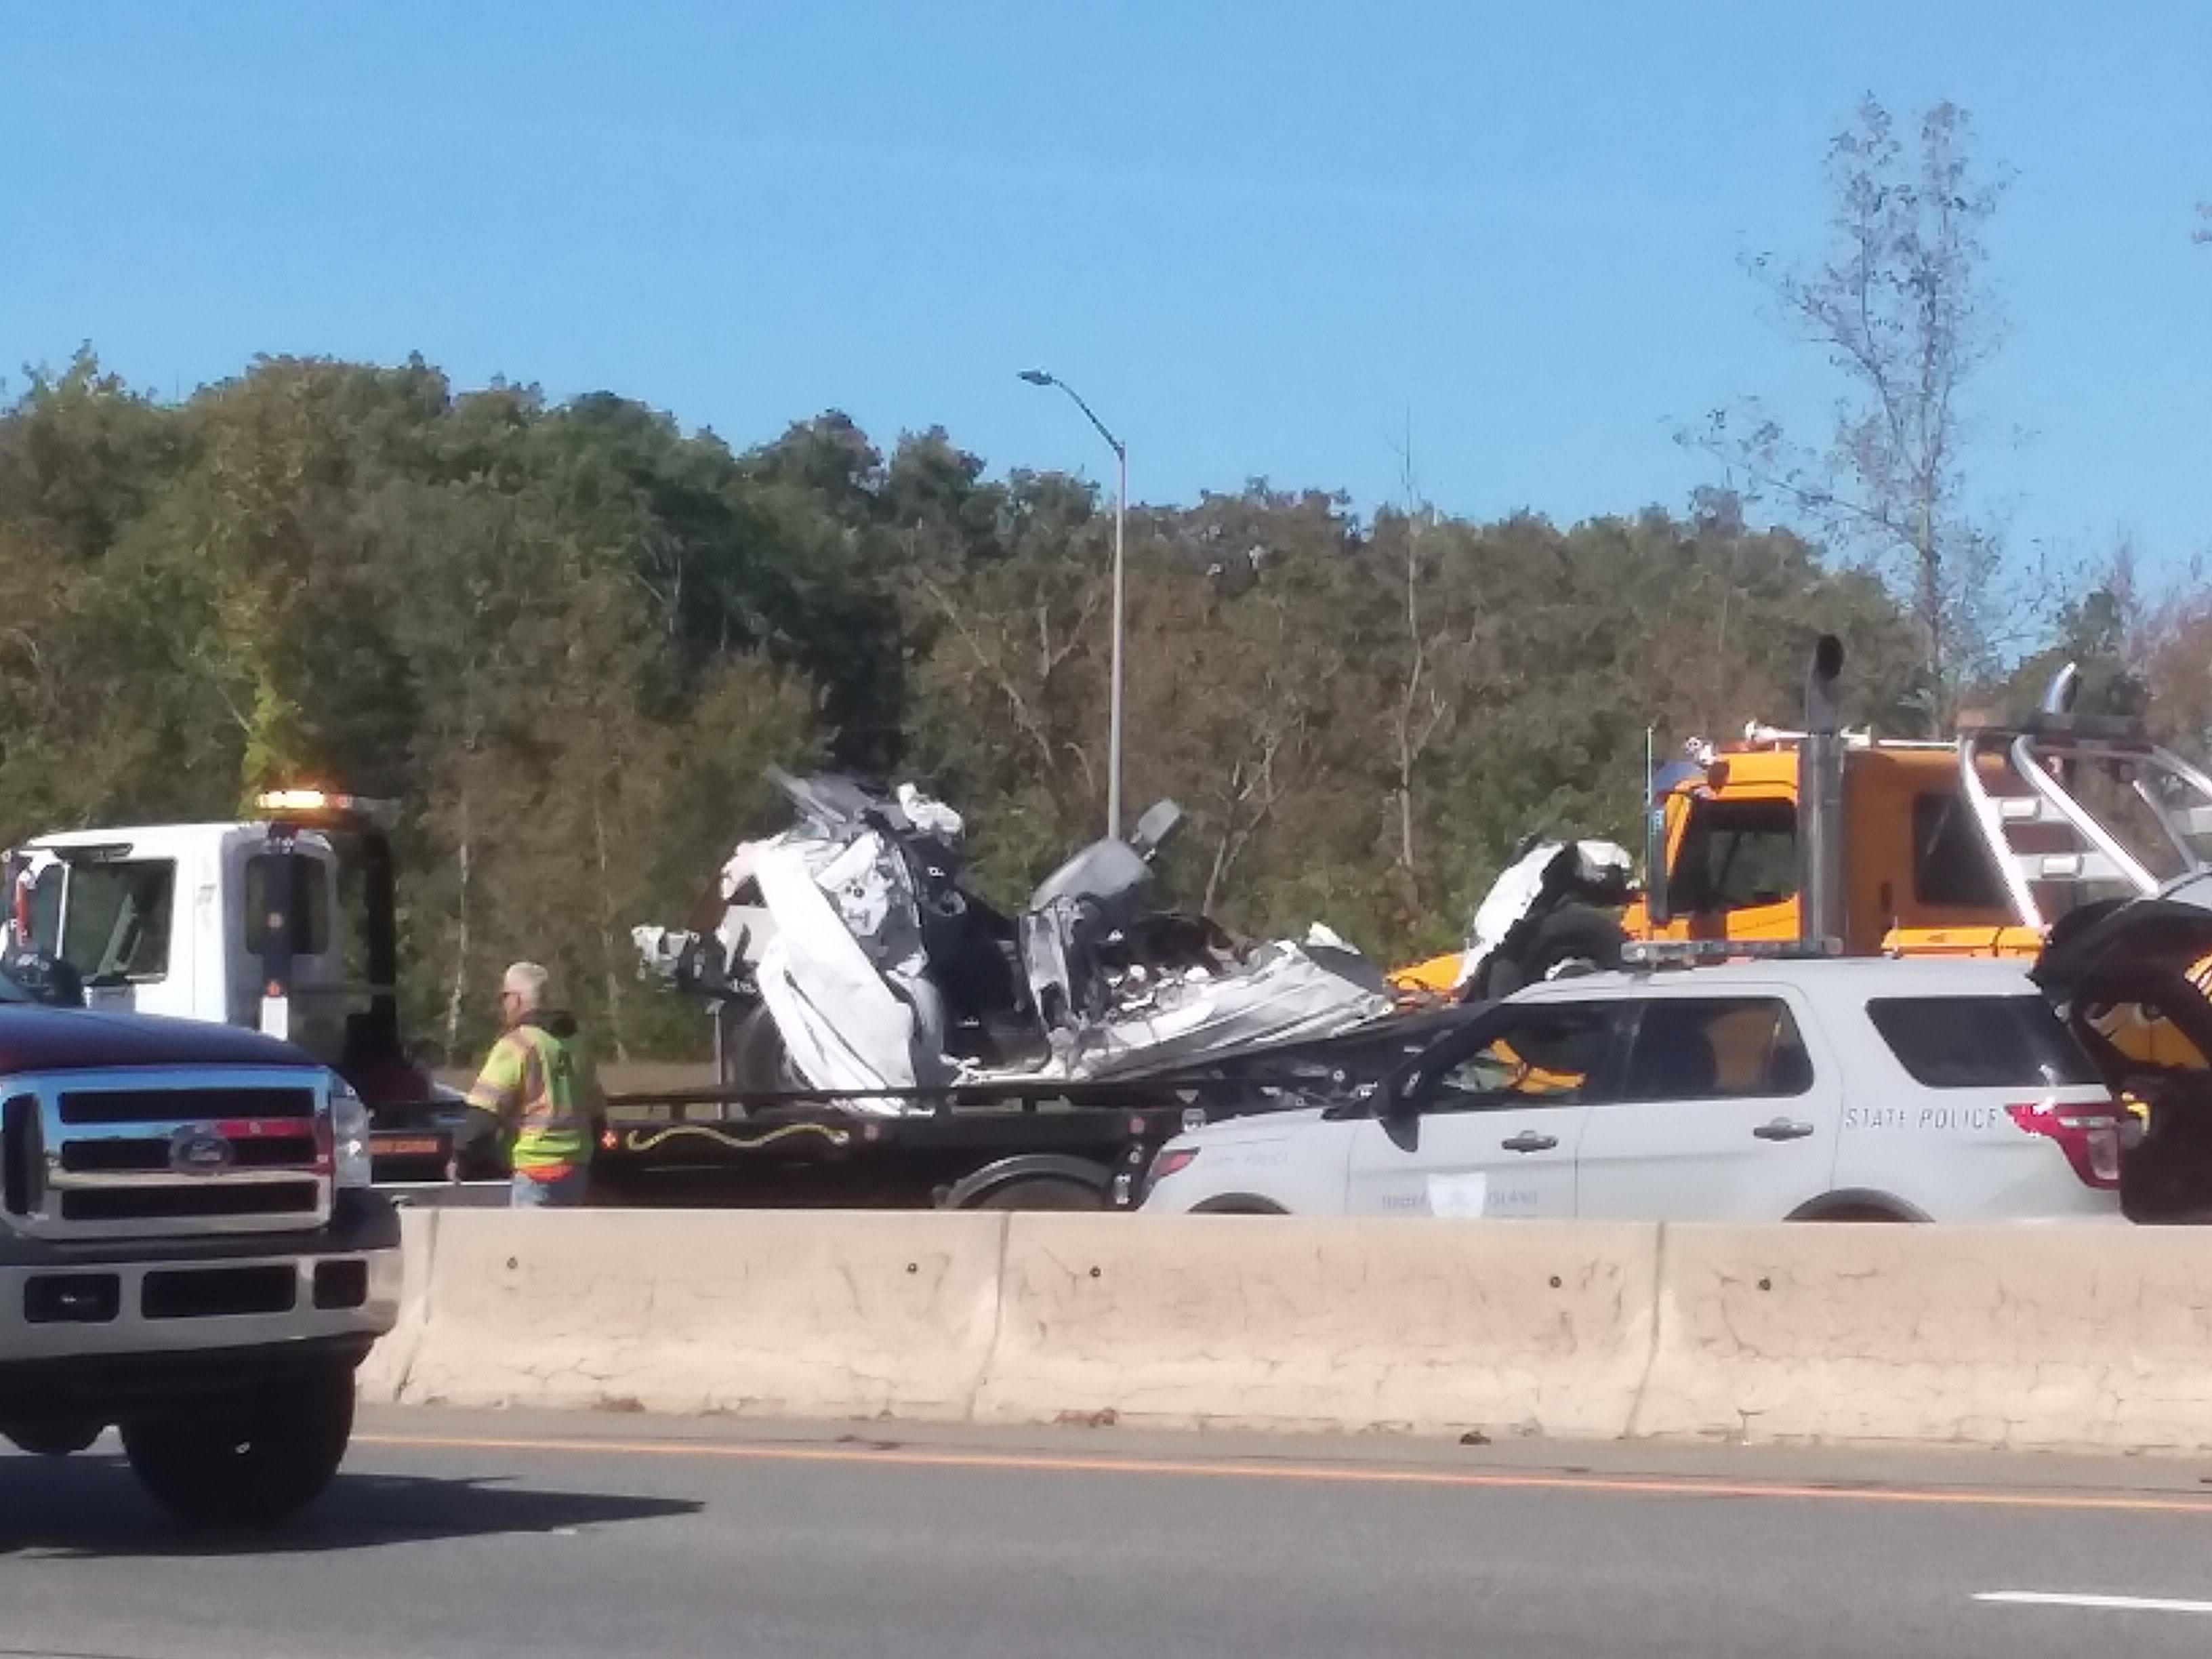 A box truck was crushed between two tractor-trailer trucks on Interstate 195 west in East Providence, Tuesday, Oct. 3, 2017. (WJAR)<p></p>